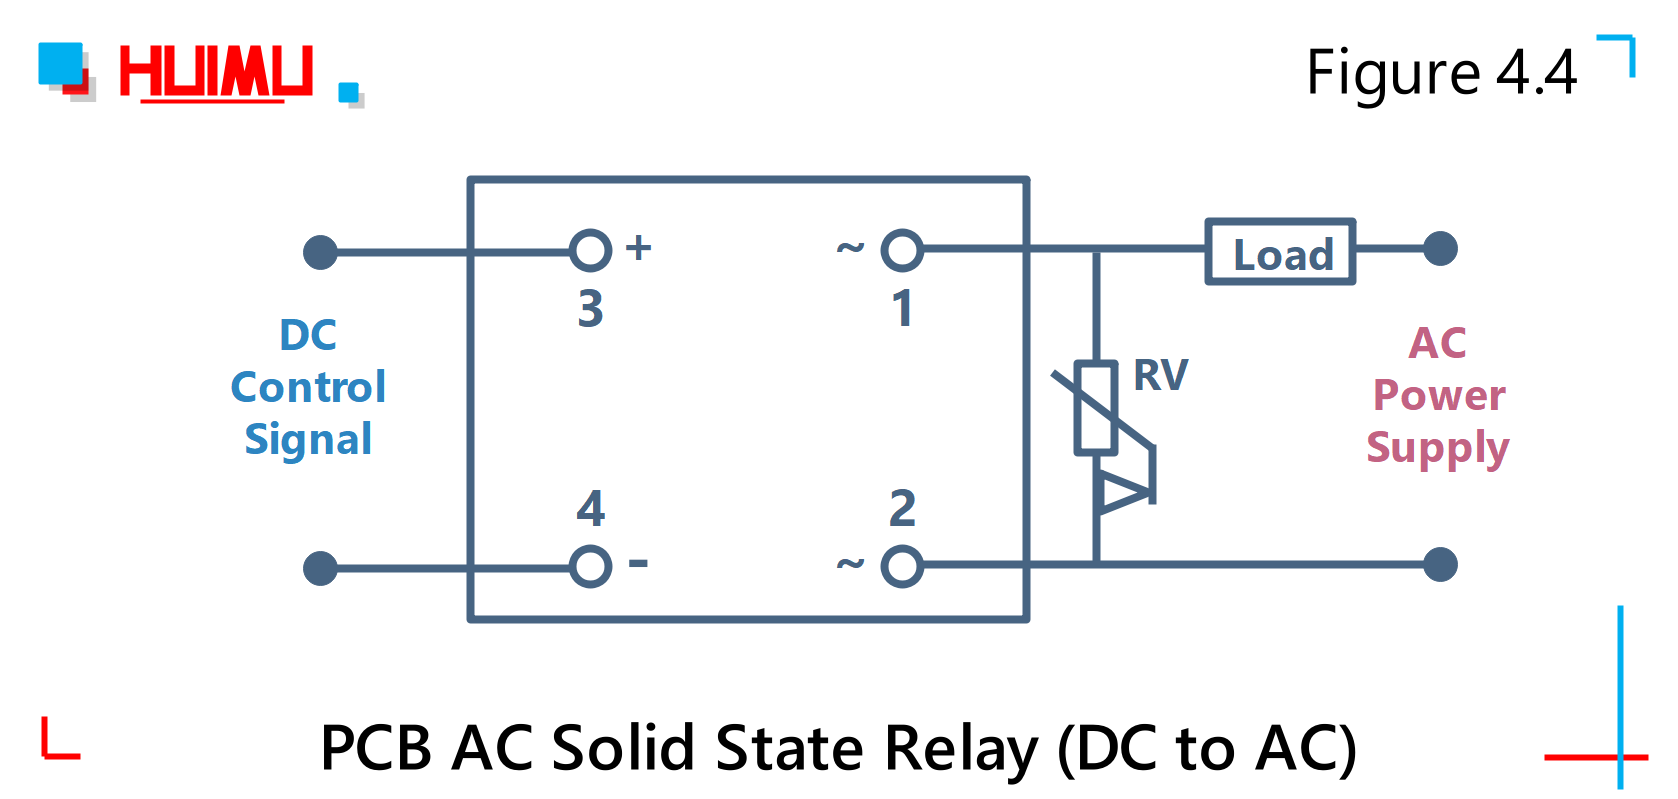 PCB AC solid state relay (DC to AC) wiring diagram and circuit diagram Type 4